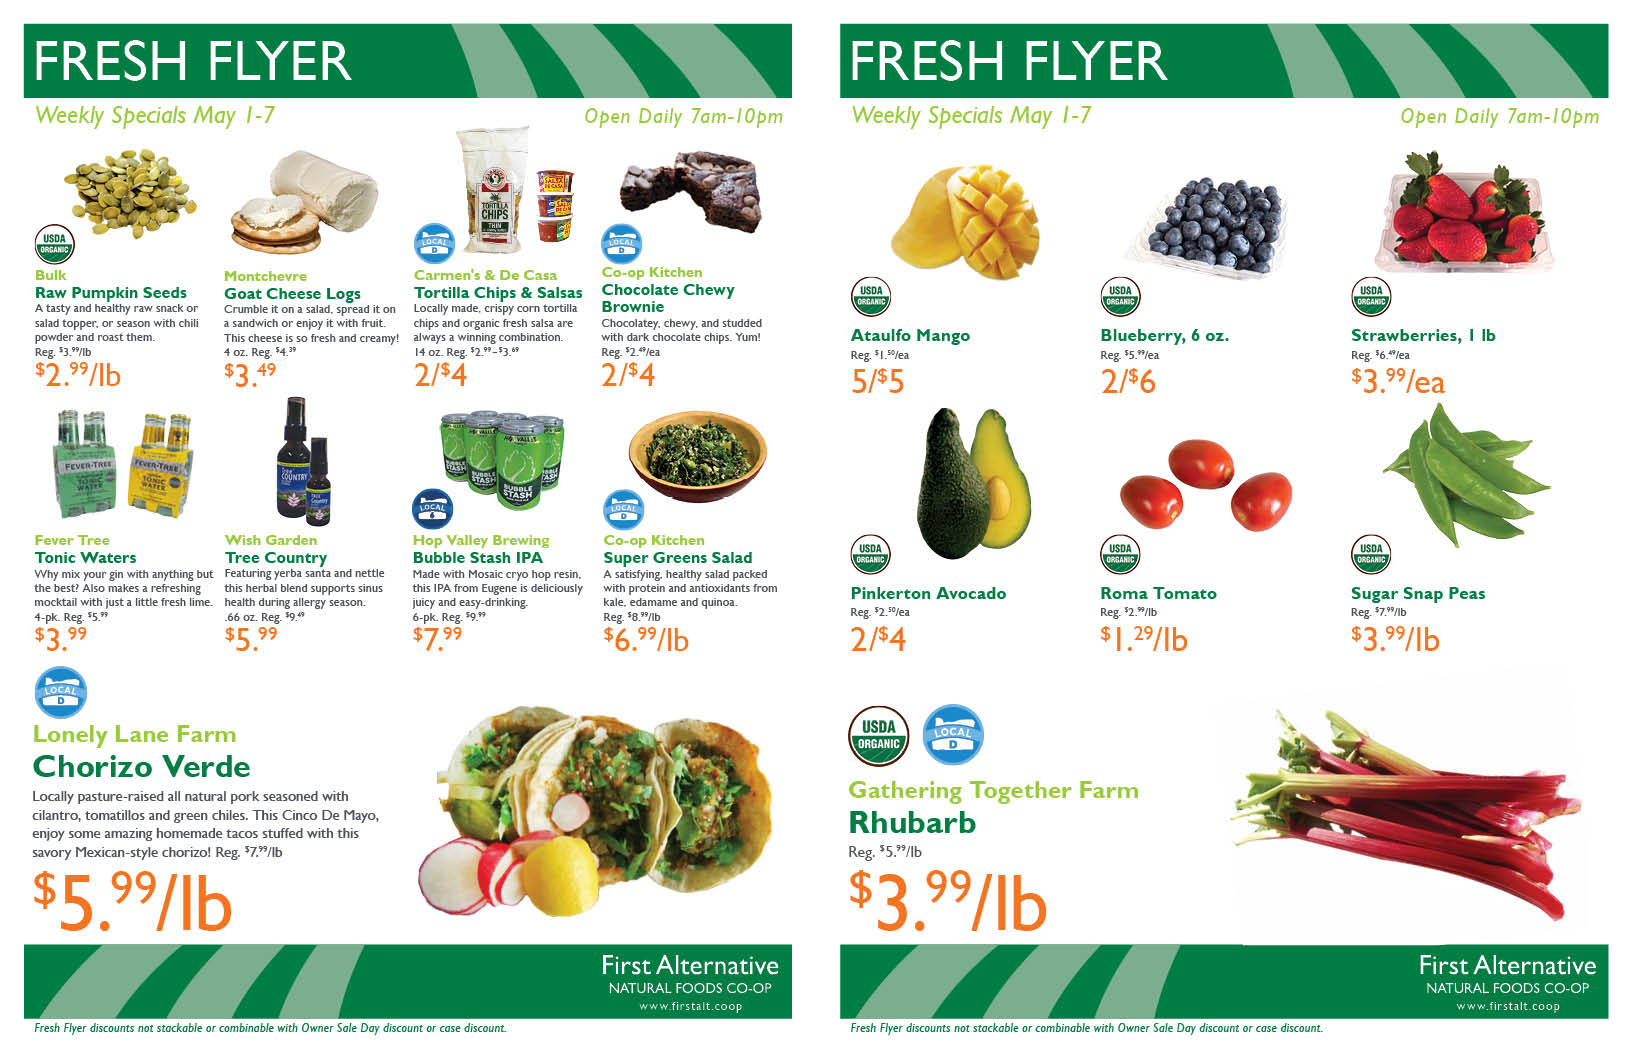 First Alternative Co-op Fresh Flyer May 1-7